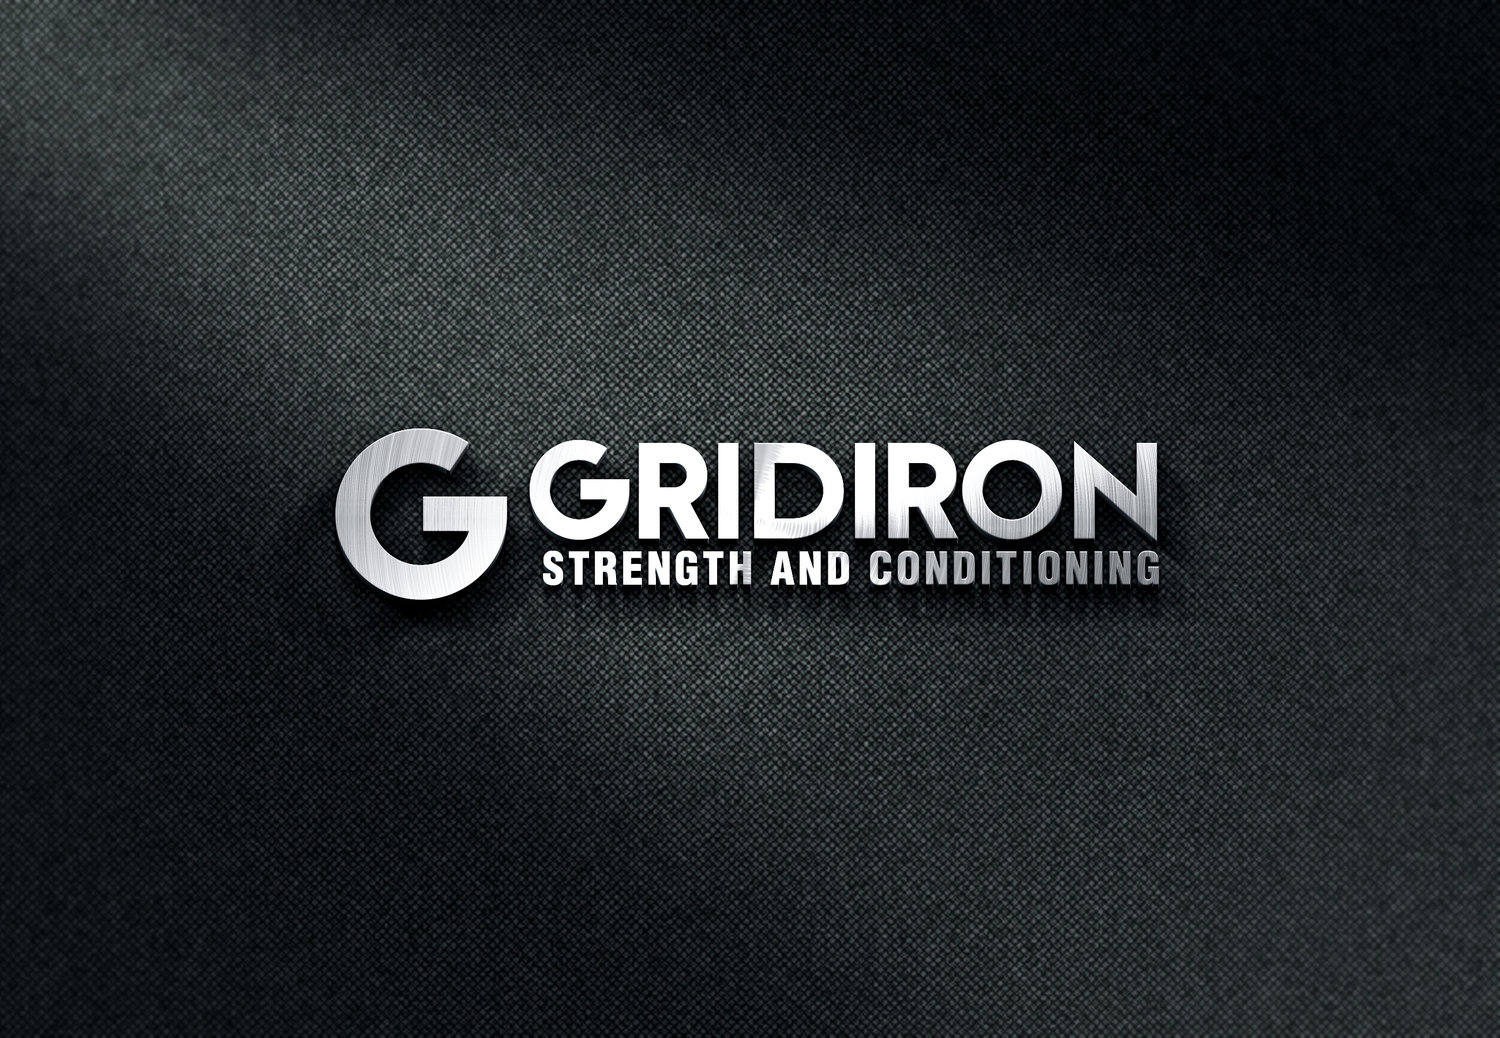 Gridiron Strength and Conditioning